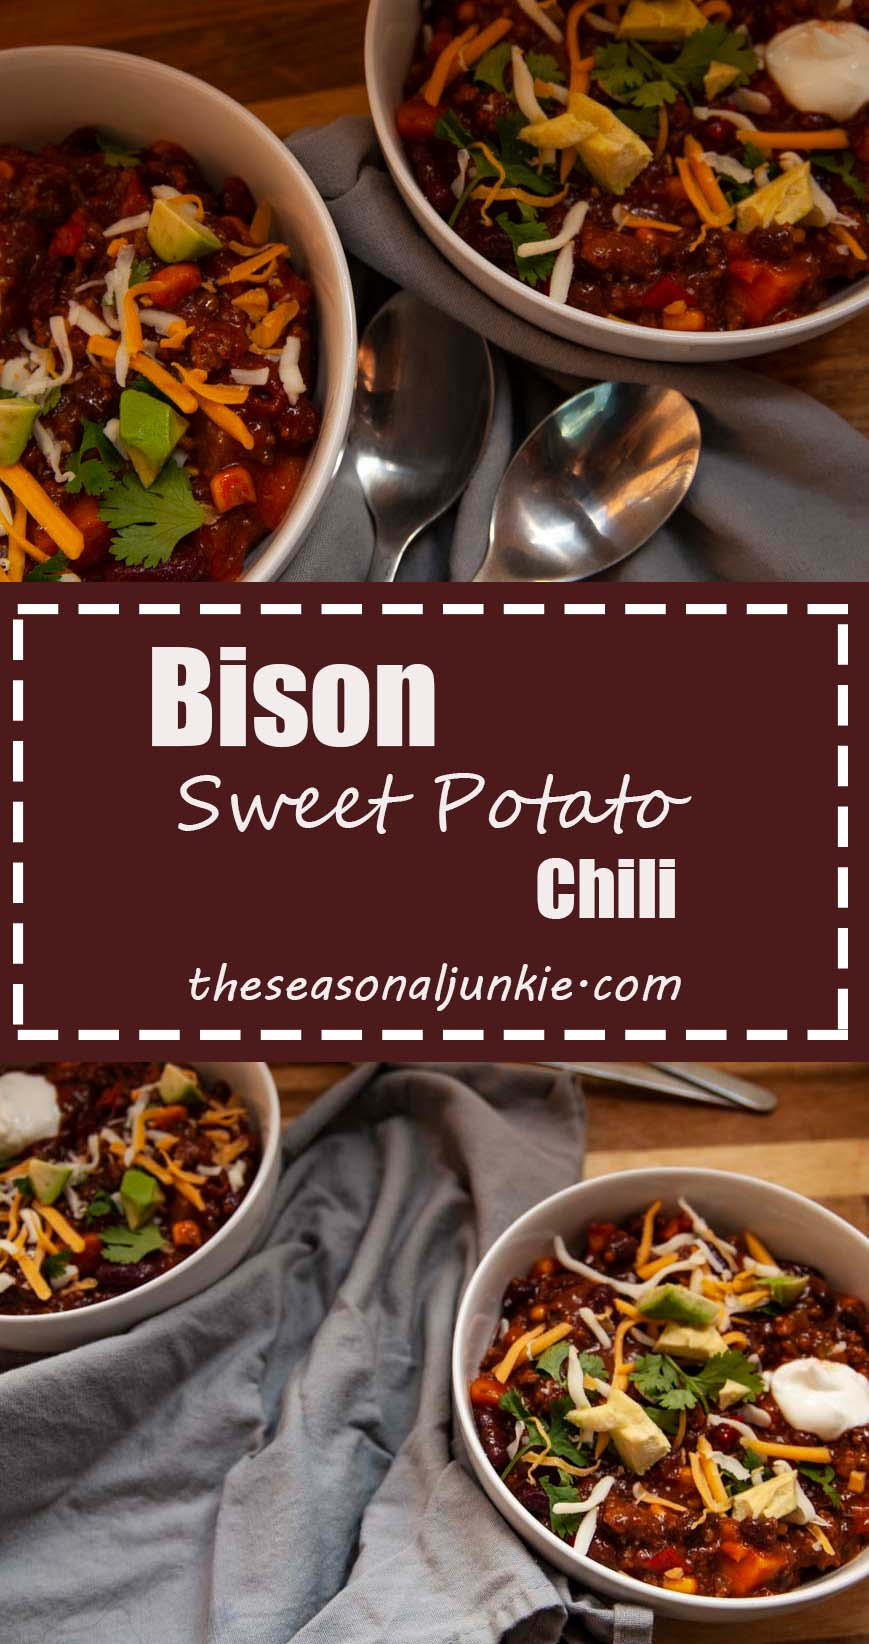 Sweet Potato Chili-The seasonal junkie